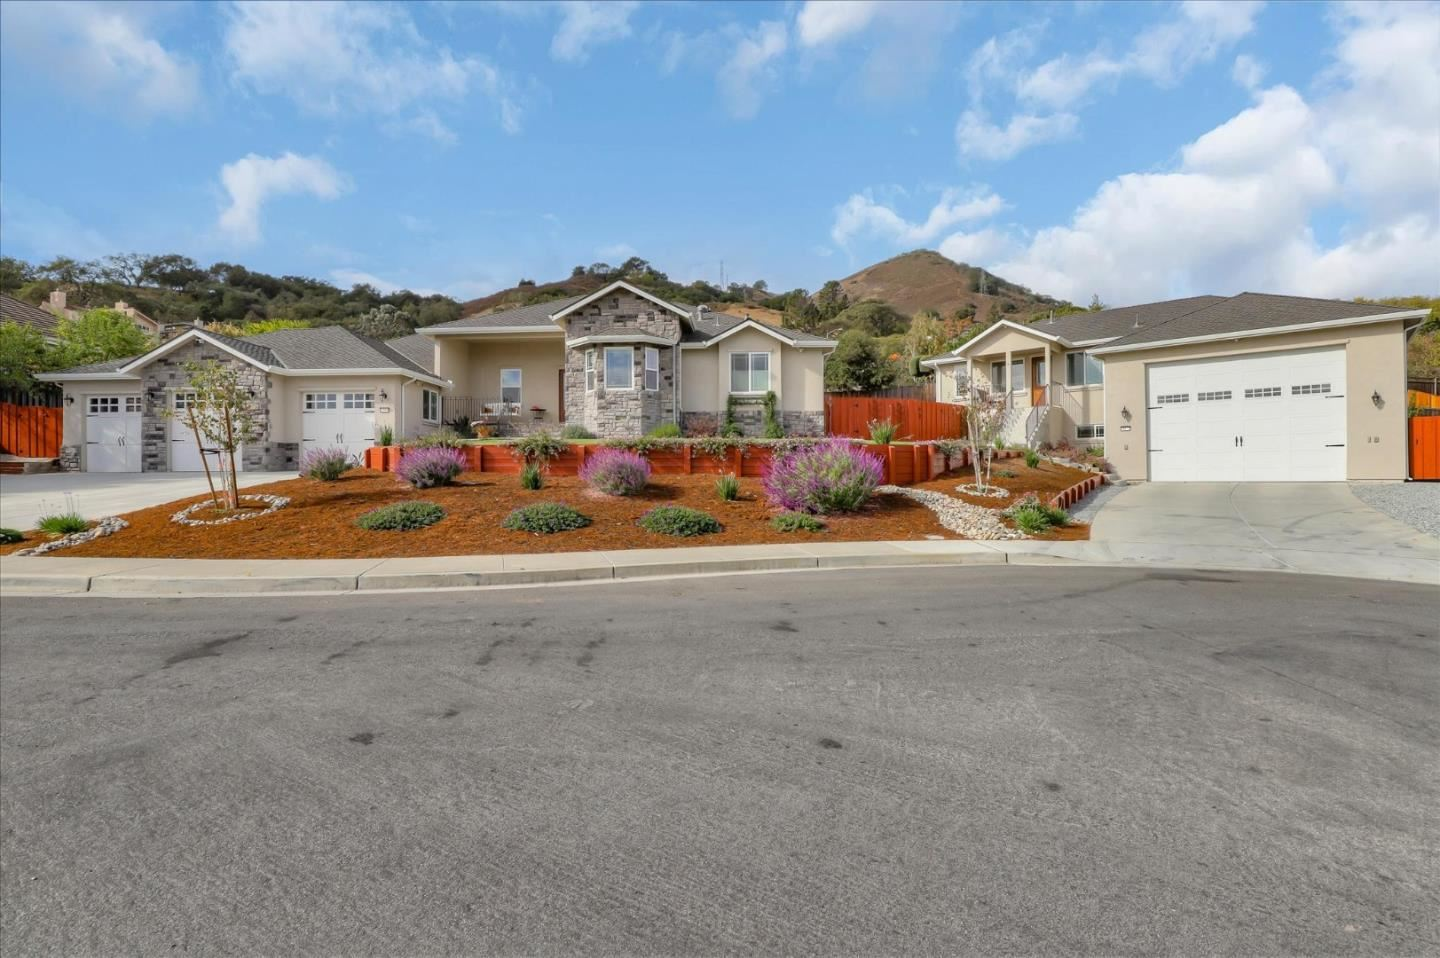 Photo for 645 Price DR, MORGAN HILL, CA 95037 (MLS # ML81819481)